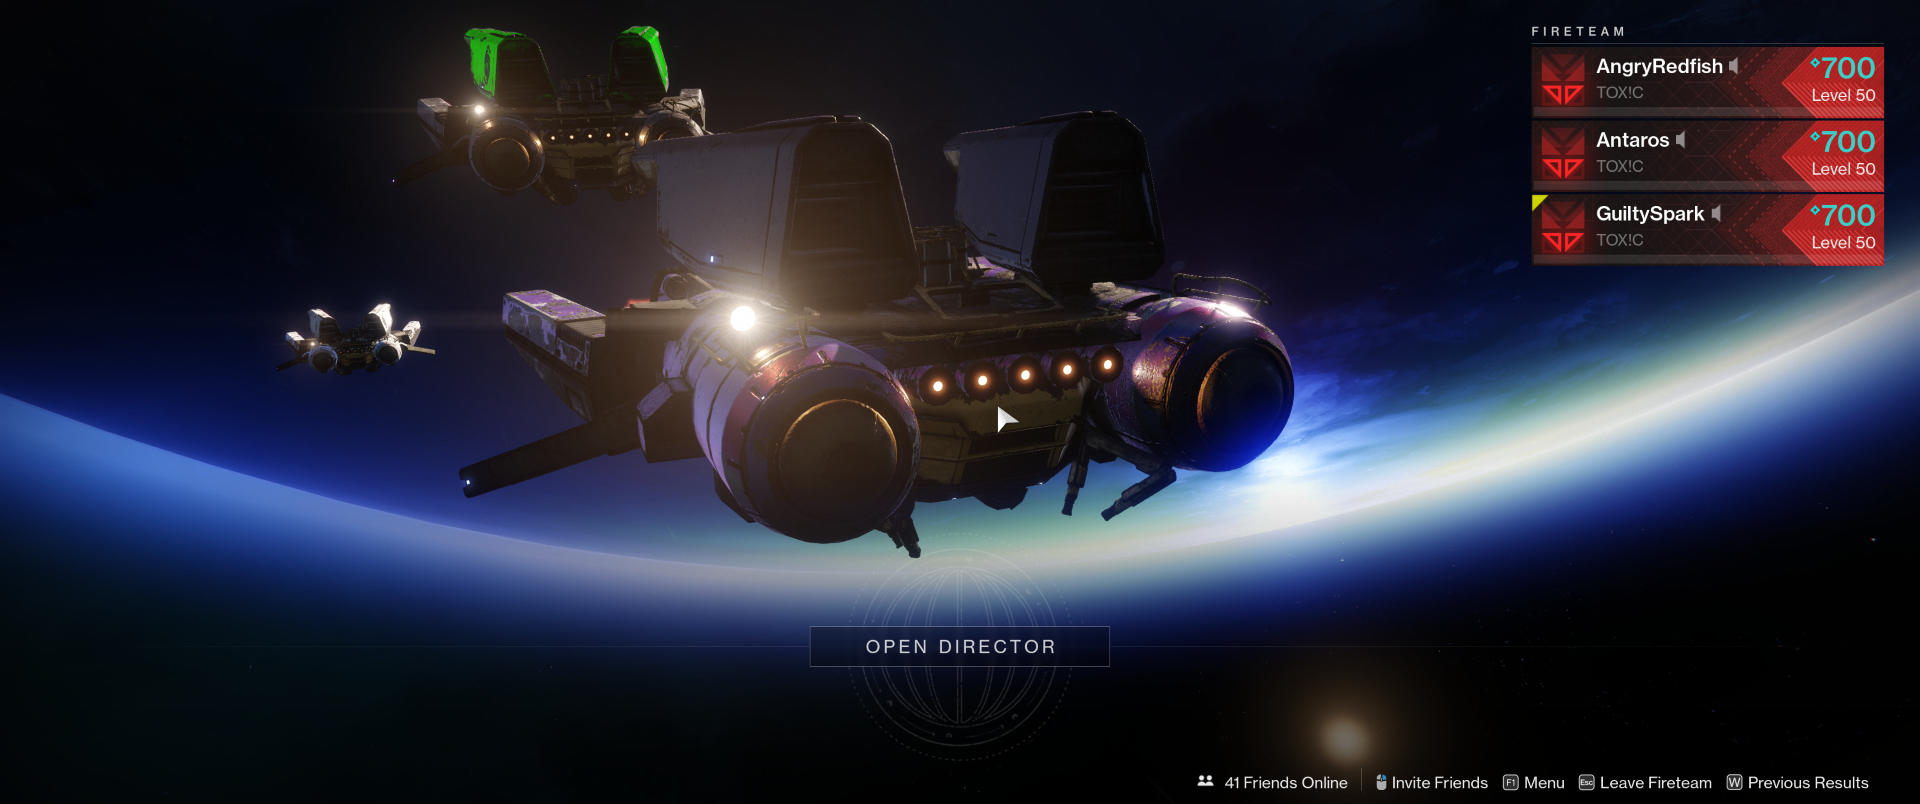 Destiny 2 Screenshot 2019.05.21 - 22.04.18.100 (Large).png